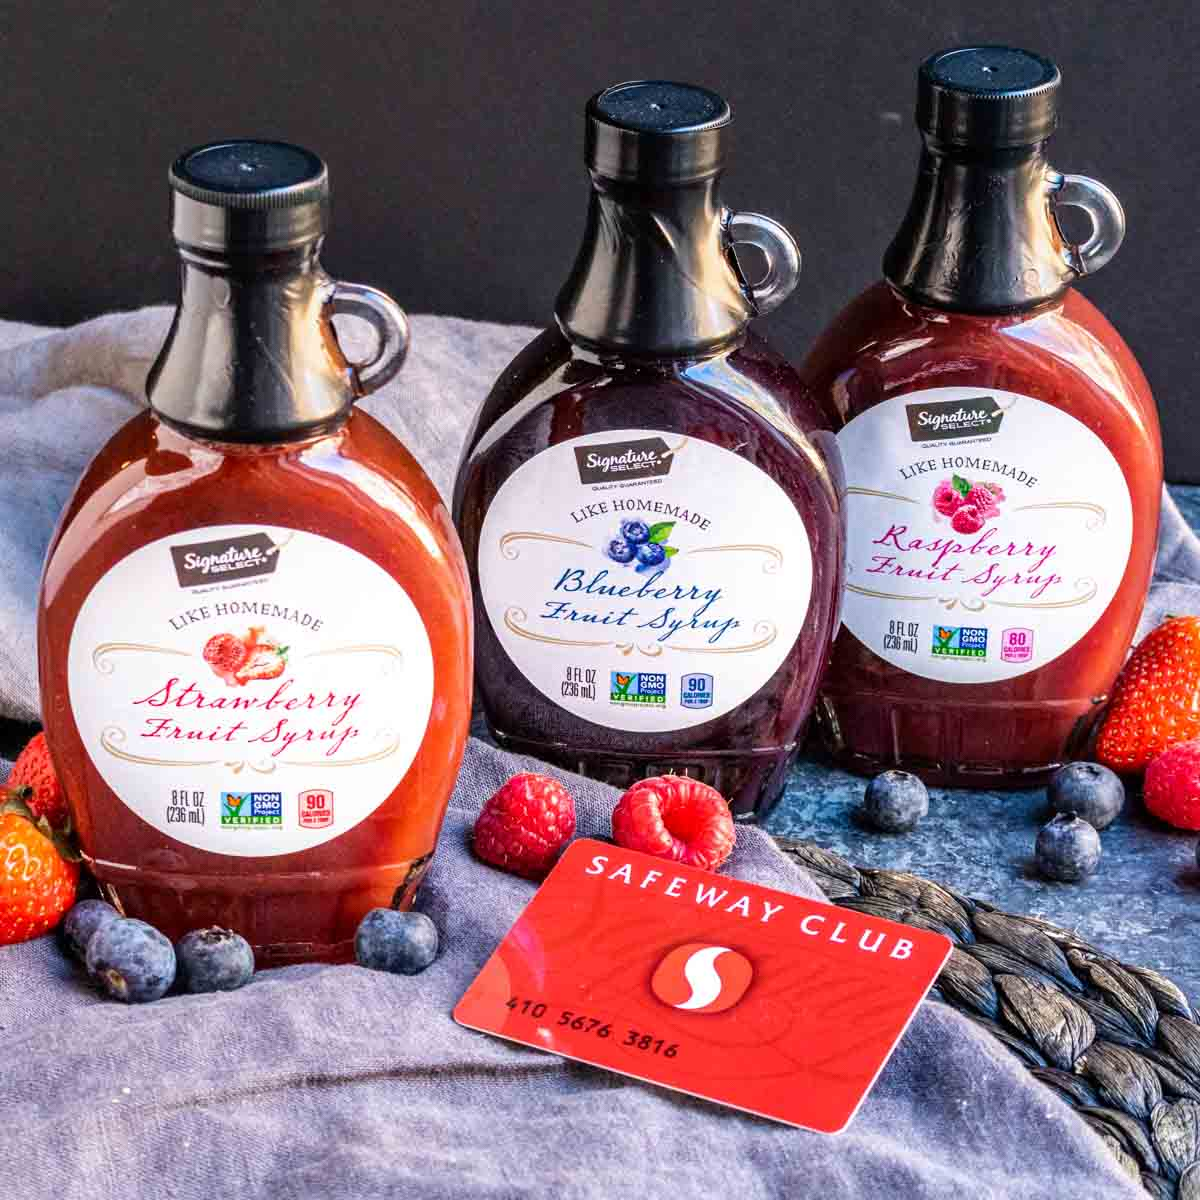 fruit syrup jars from Safeway